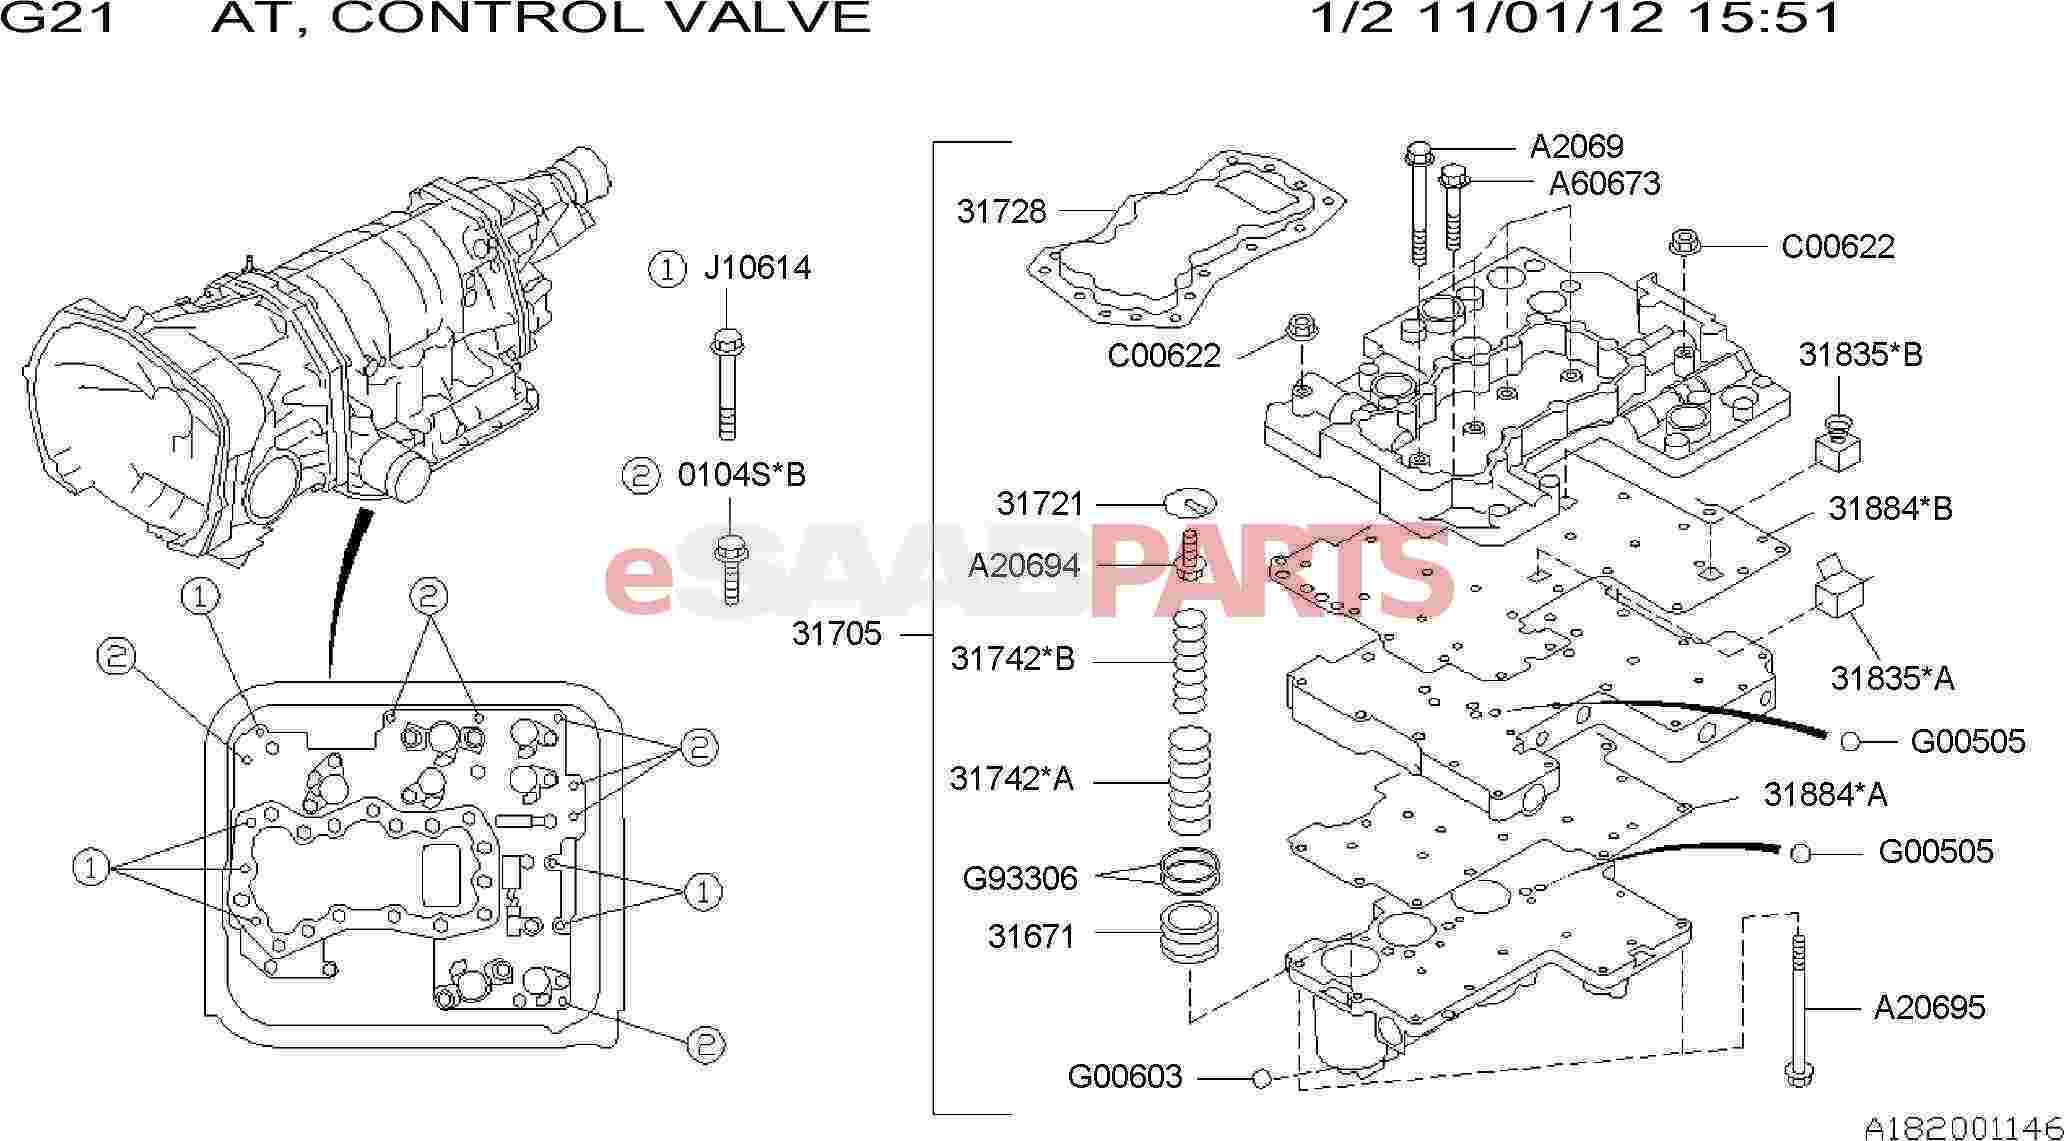 Saab Valve Assembly Control